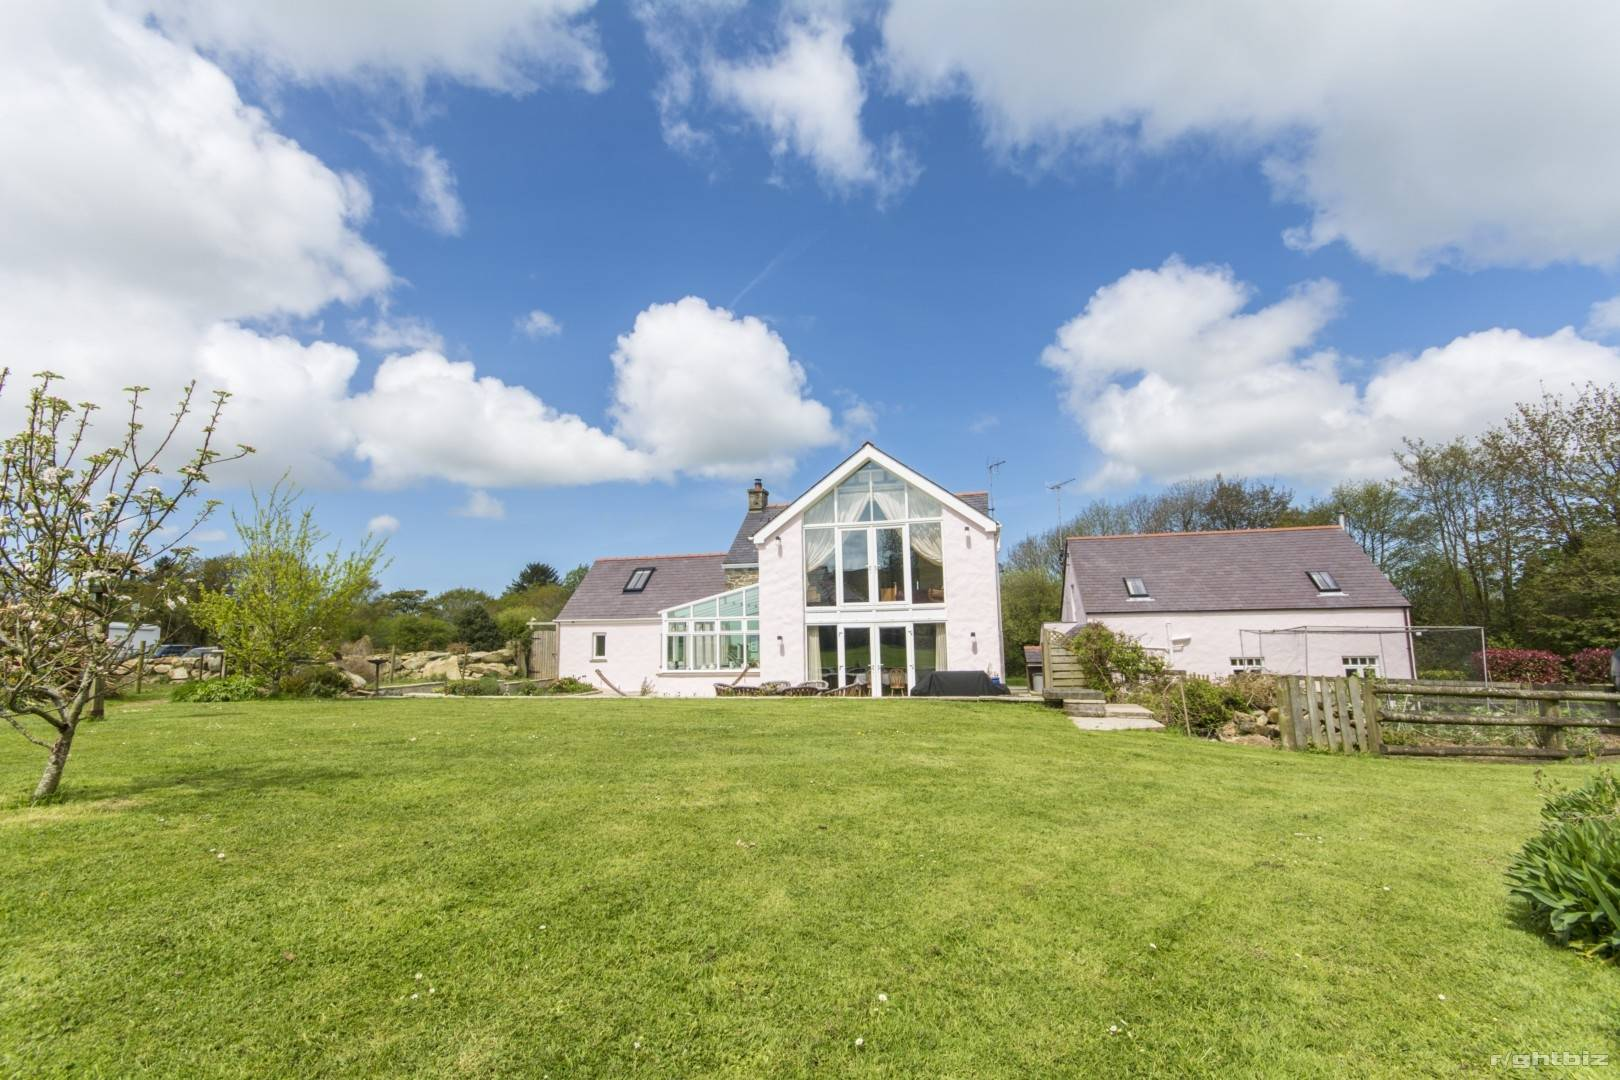 HOLIDAY LETTING BUSINESS/ LIVERY POTENTIAL + SMALLHOLDING + STABLES SET IN 10 ACRES - PEMBROKESHIRE - Image 8